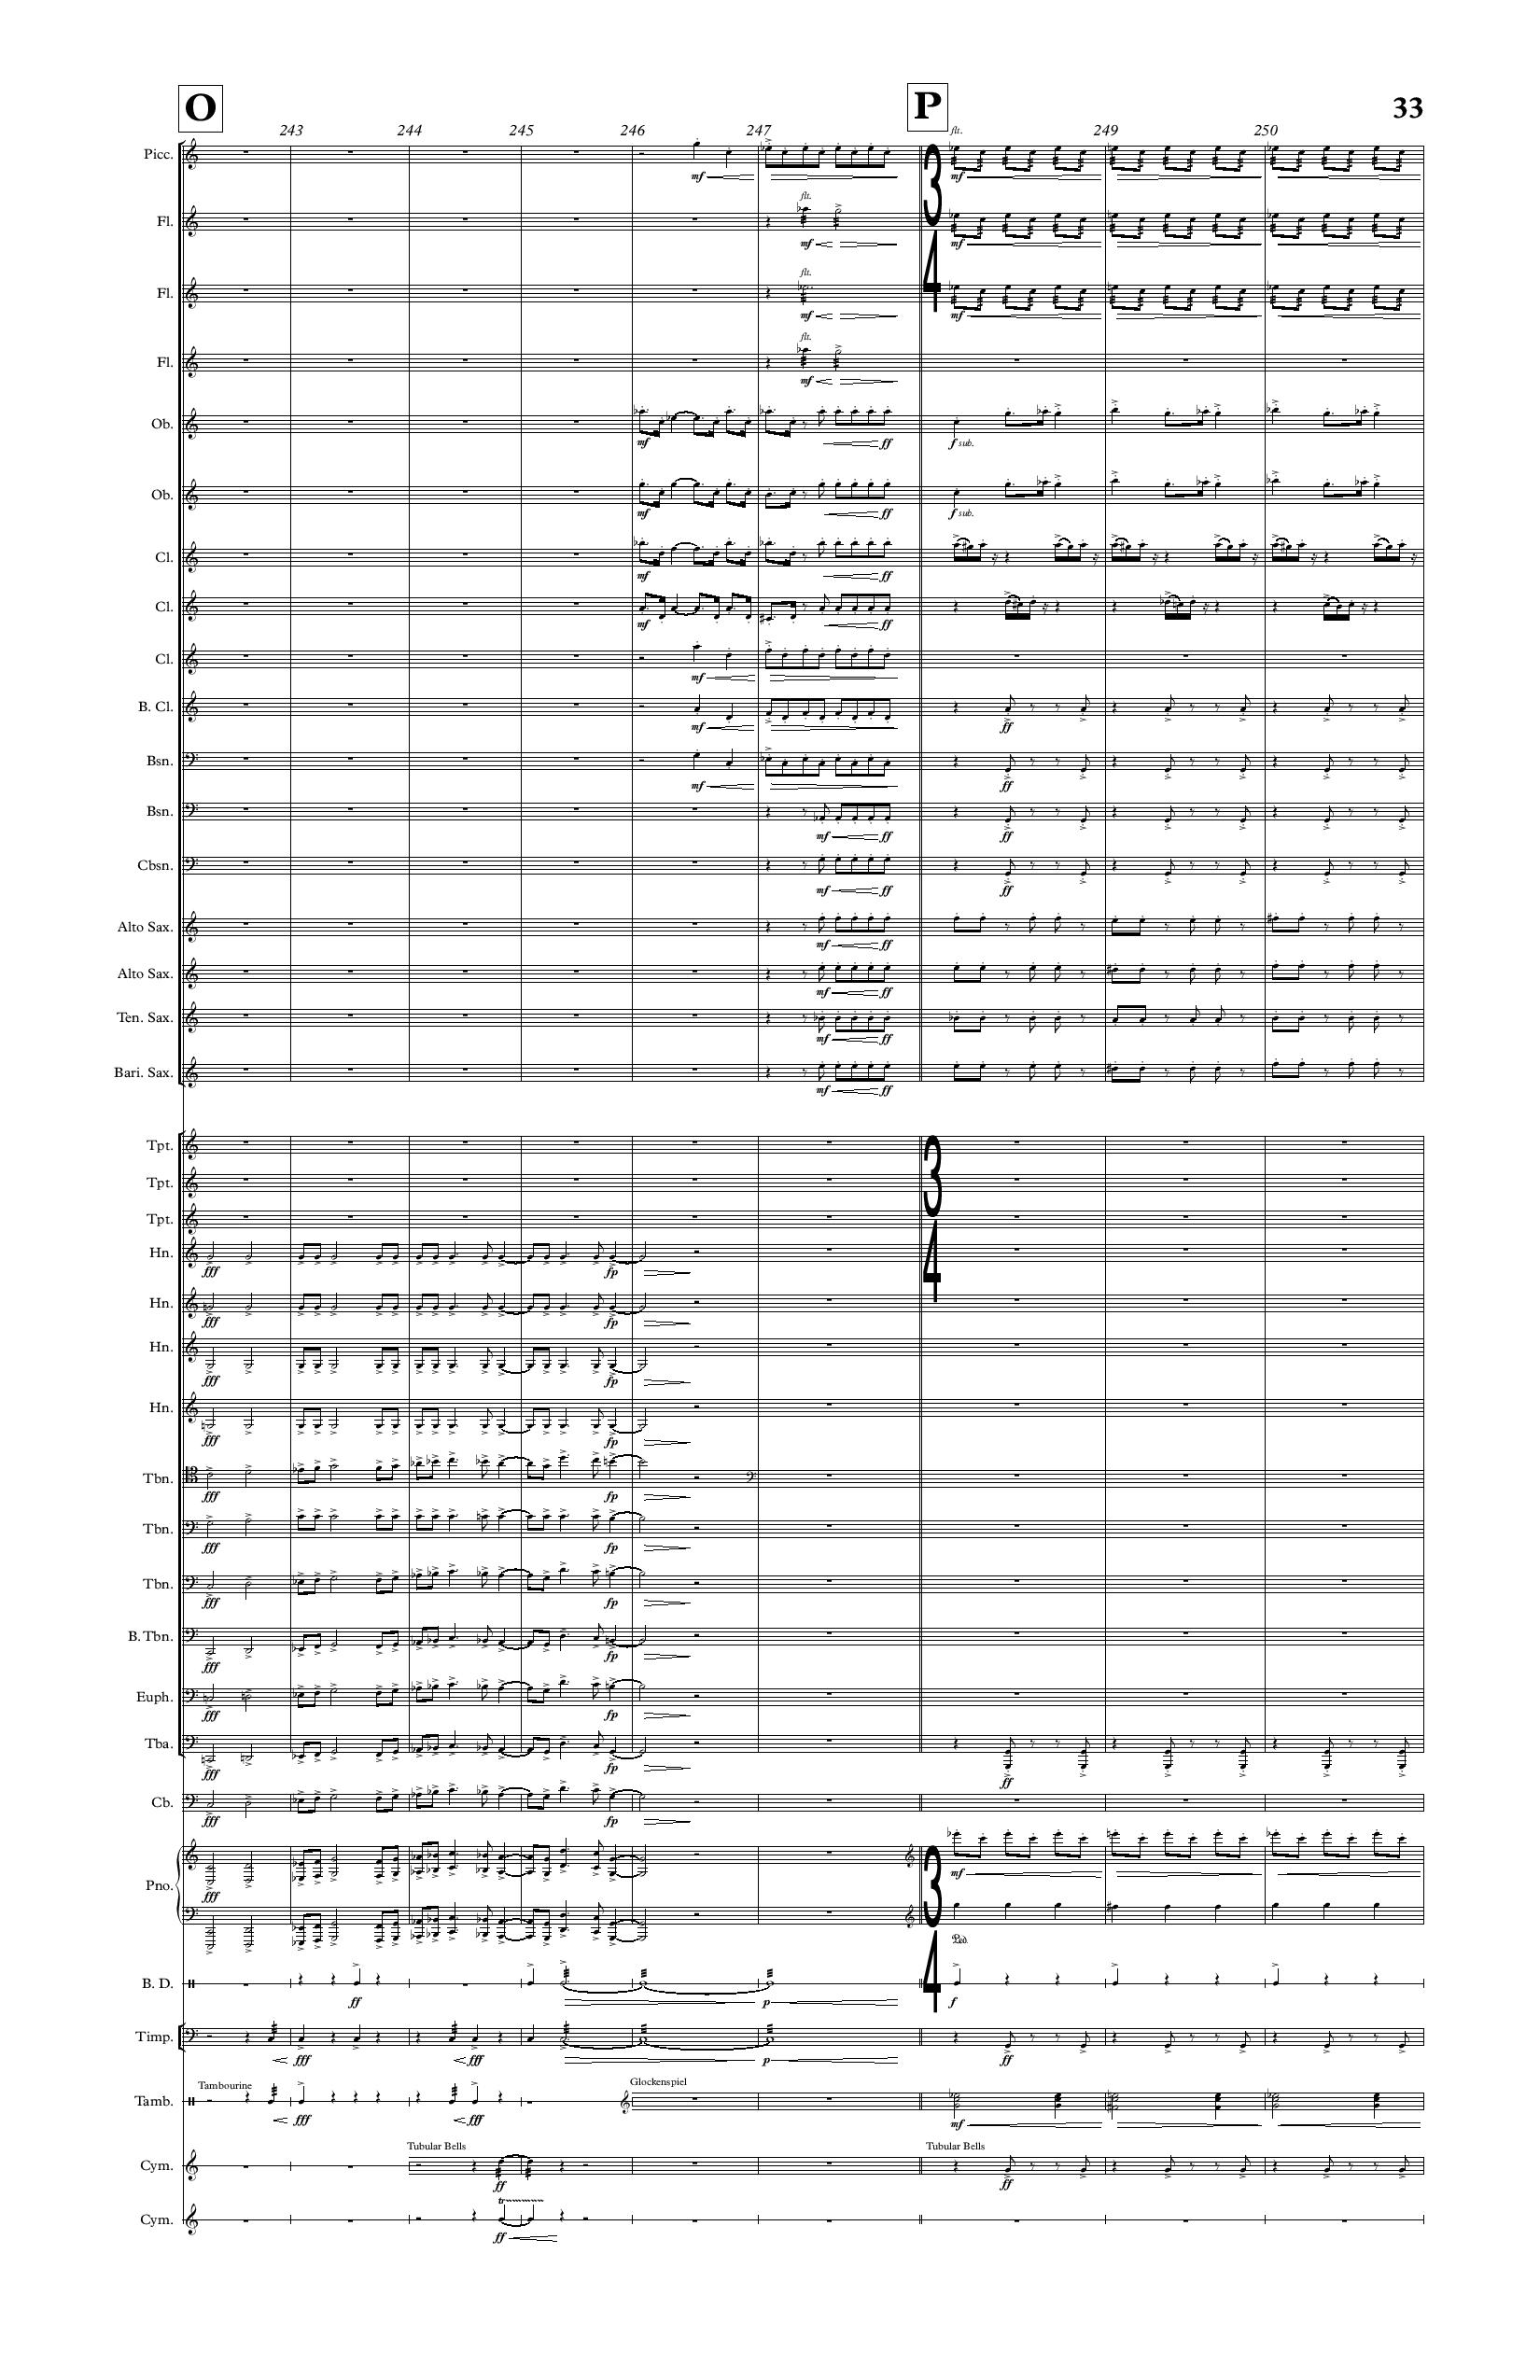 Rupture Full Transposed Score - Full Score (1)-page-033